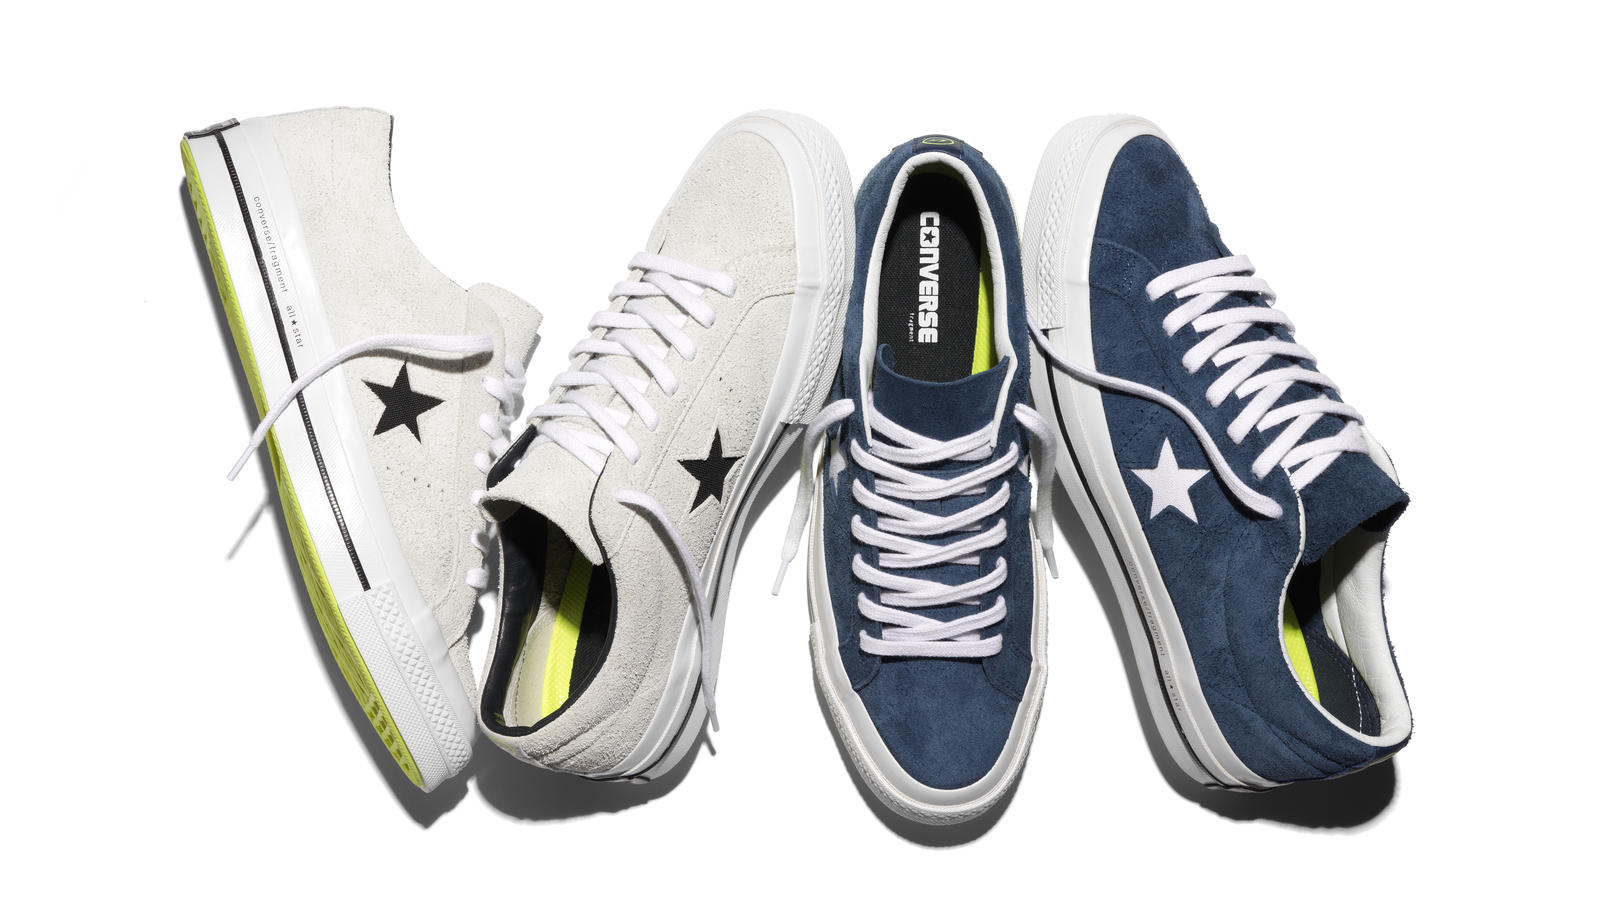 Converse One Star 74 Fragment Design   Group Original